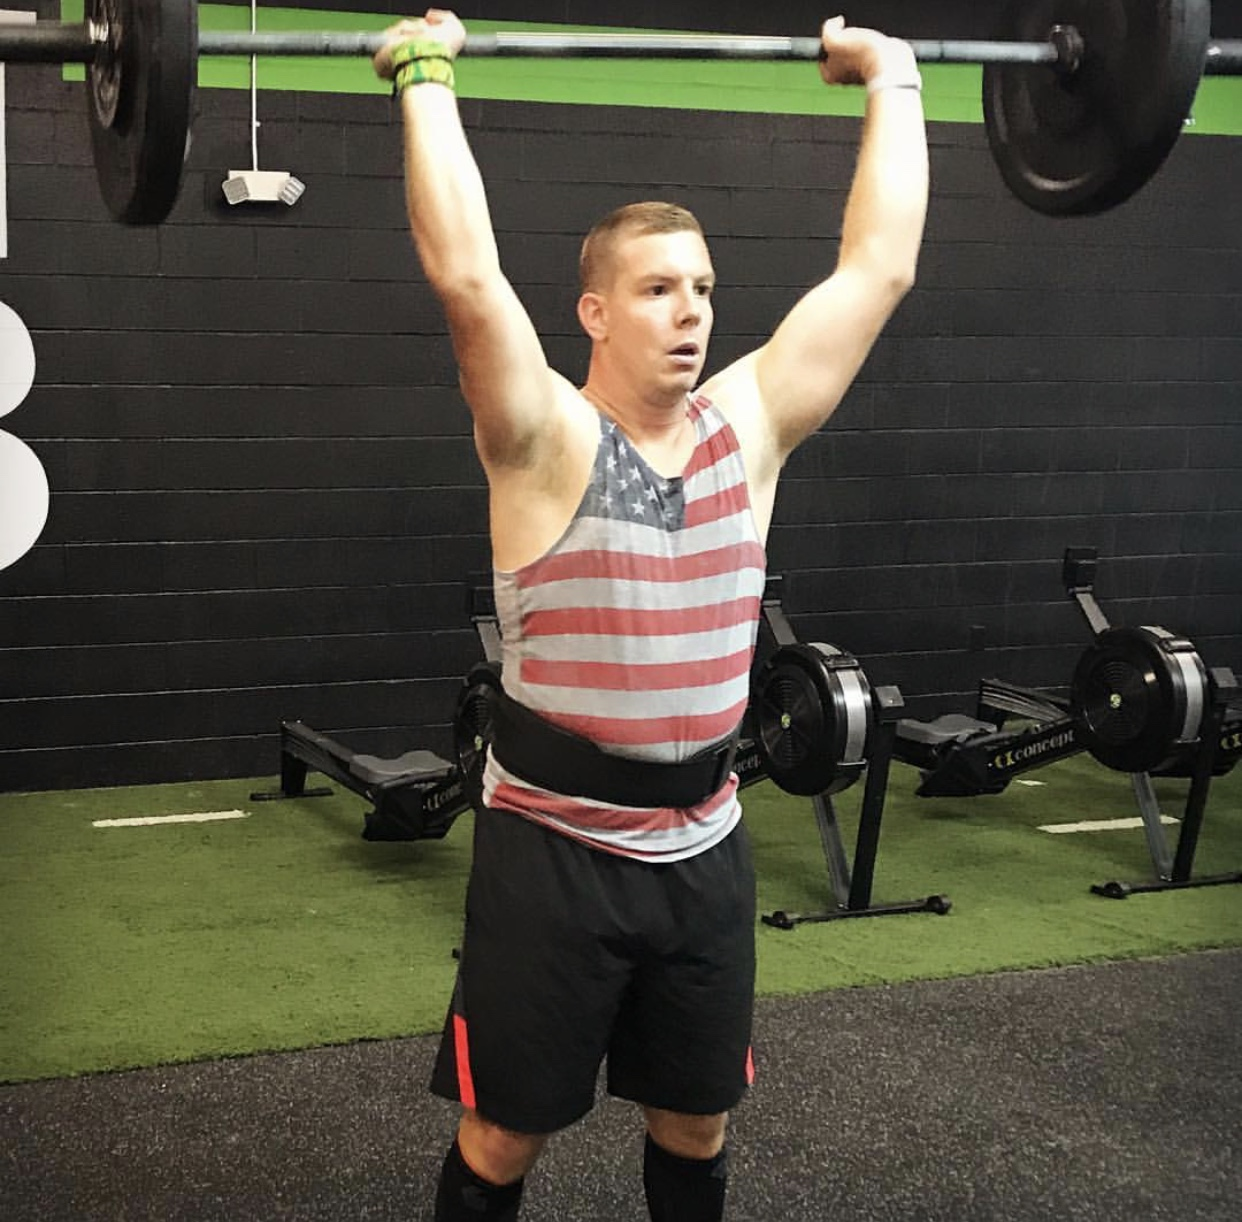 Nick Hartley - out of nearly 3000+ athletes, Nick finished 17th overall in the Scaled Division in the Central East Region. Improving daily, getting stronger and pushing limits.